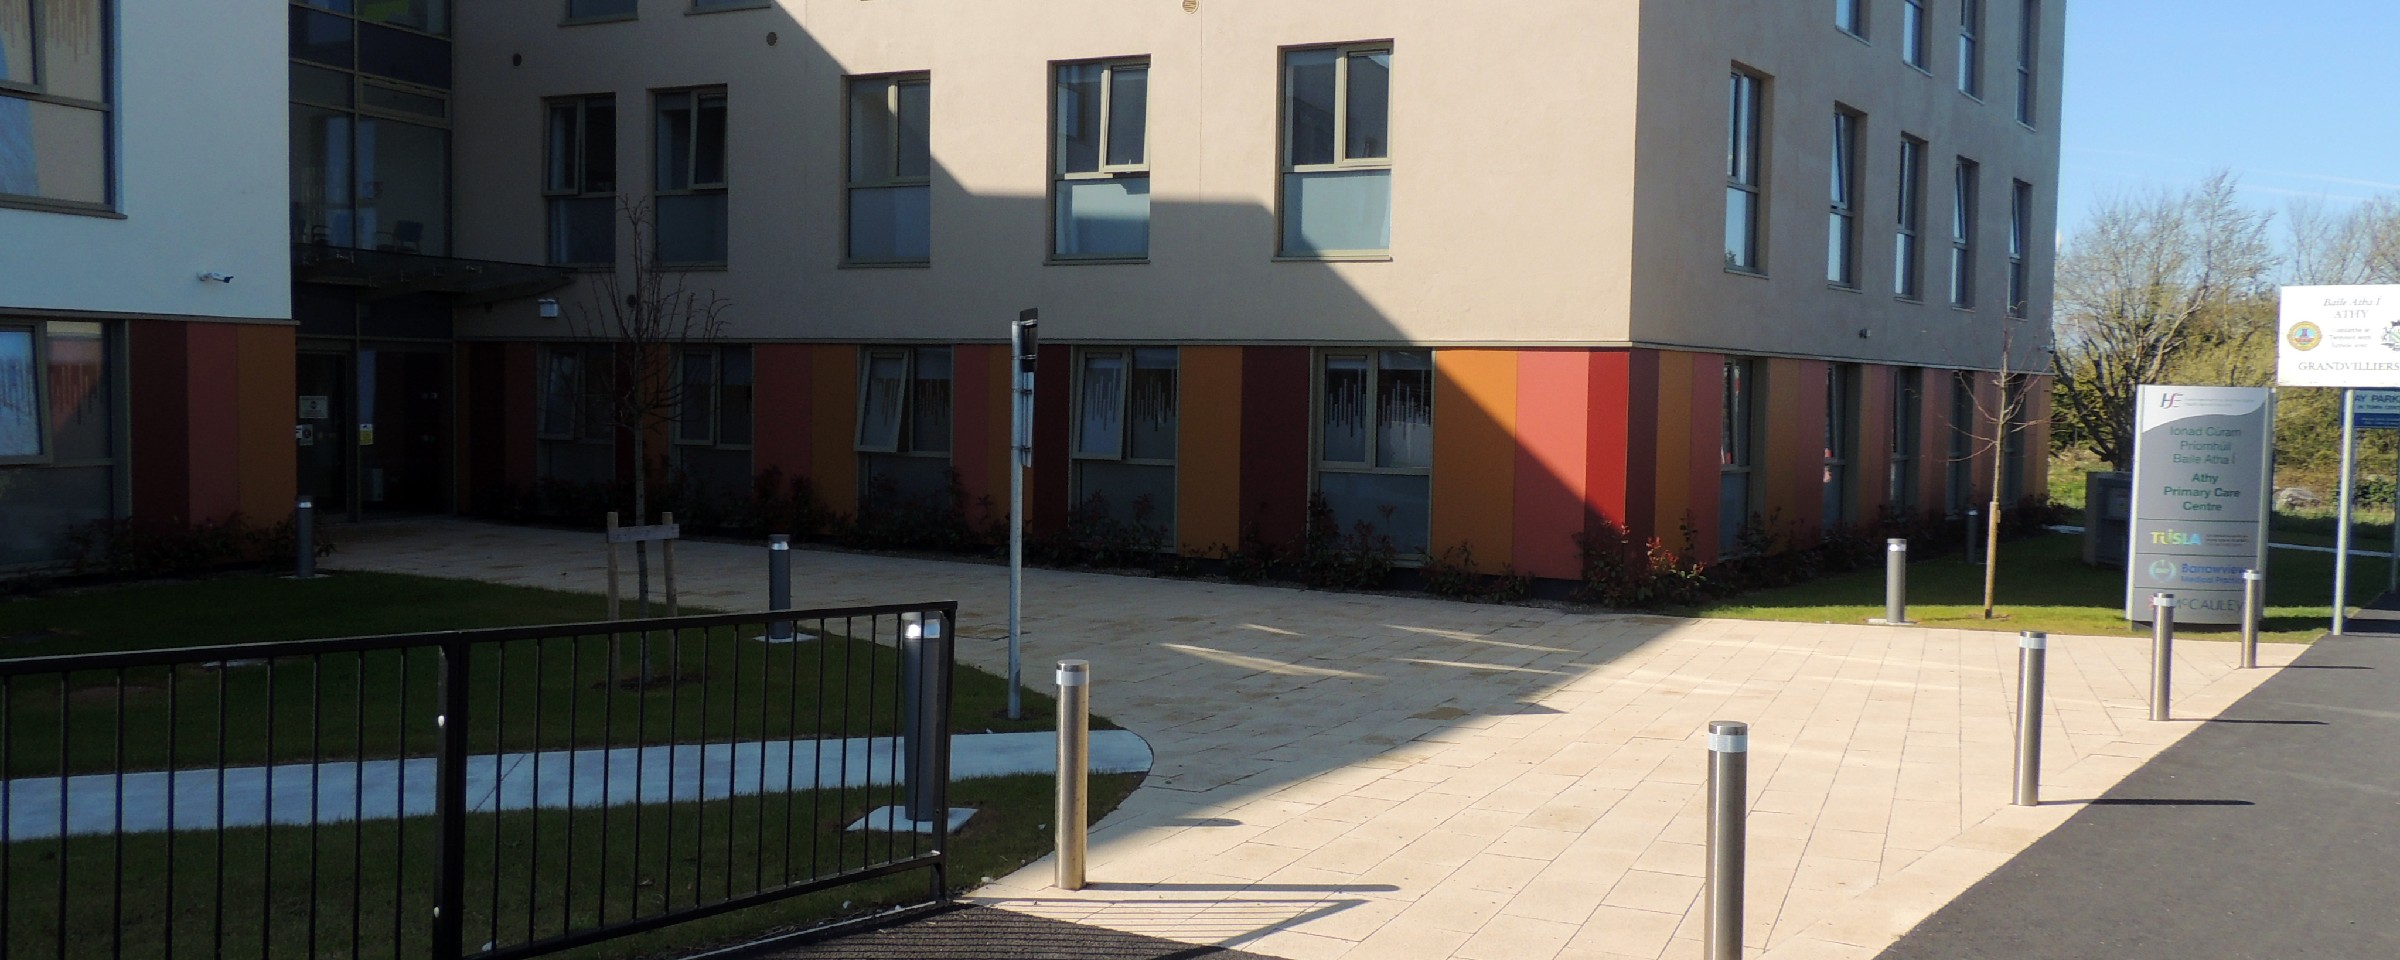 Athy Primary Care - Paving and Walling